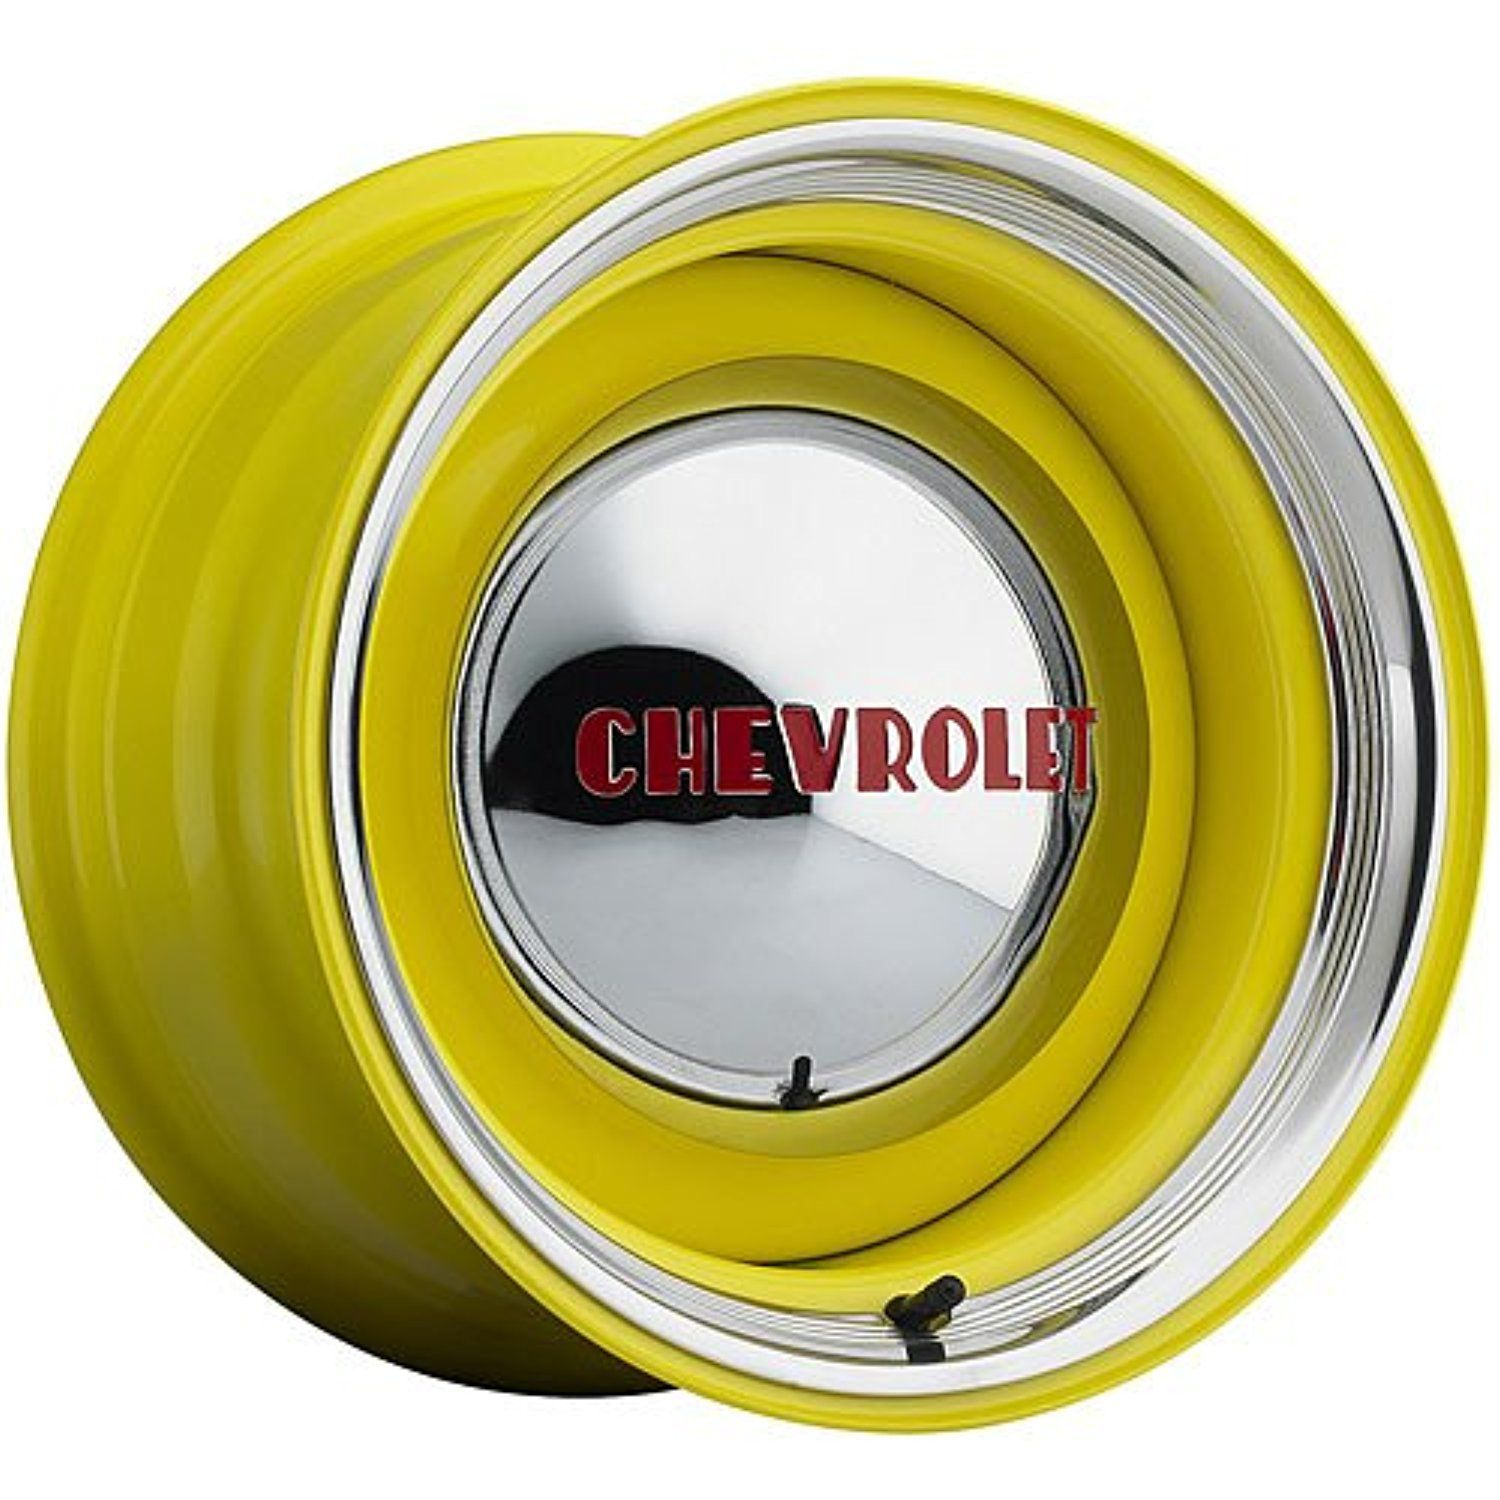 U S Wheel 51 7710 Paint Ready Smoothie Wheel Series 51 Size 16 X 7 Bolt Circ Awesome Products Selected By Anna Churchi Hot Rods Rims For Cars Wheel Rims